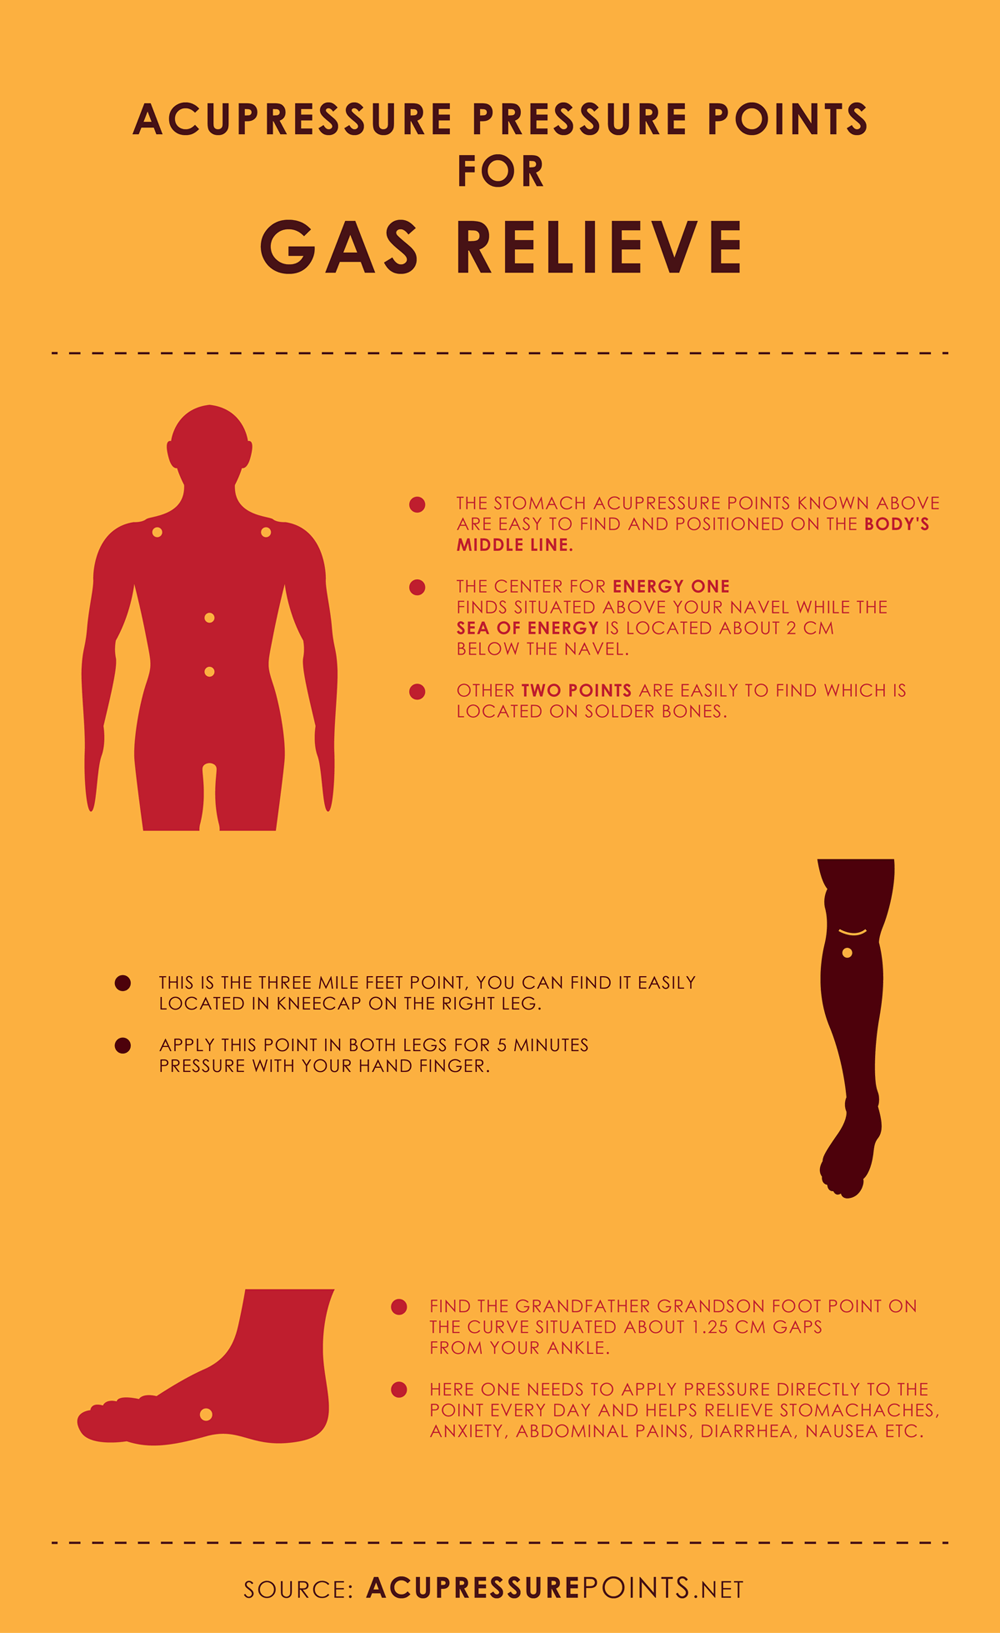 Acupressure Points for Gas Relieve Infographic: